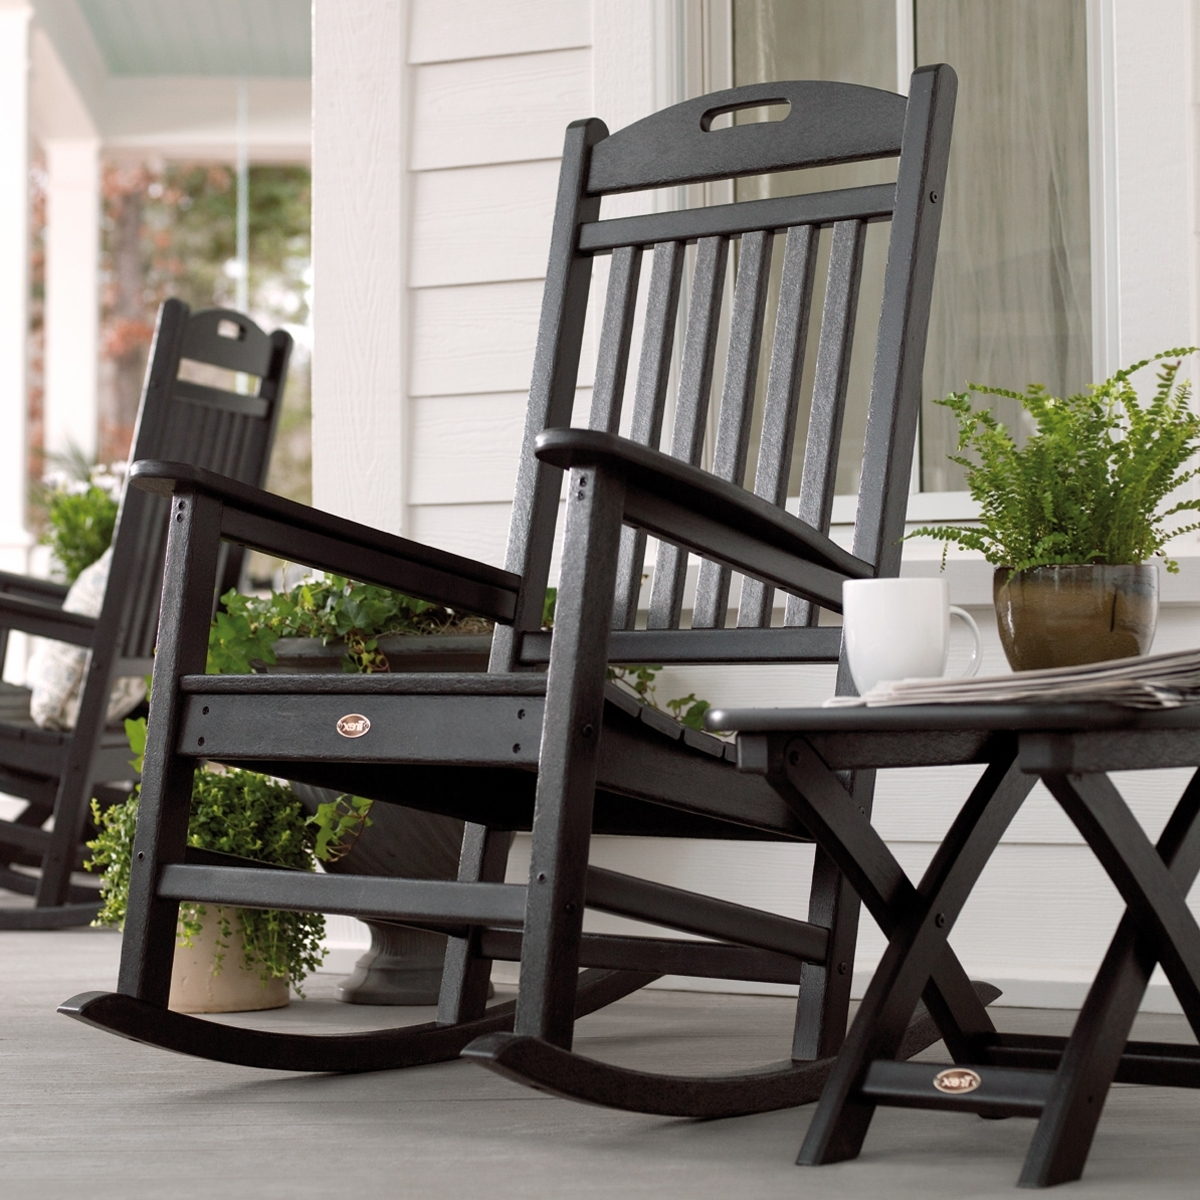 Incredible The Best Rona Patio Rocking Chairs Evergreenethics Interior Chair Design Evergreenethicsorg